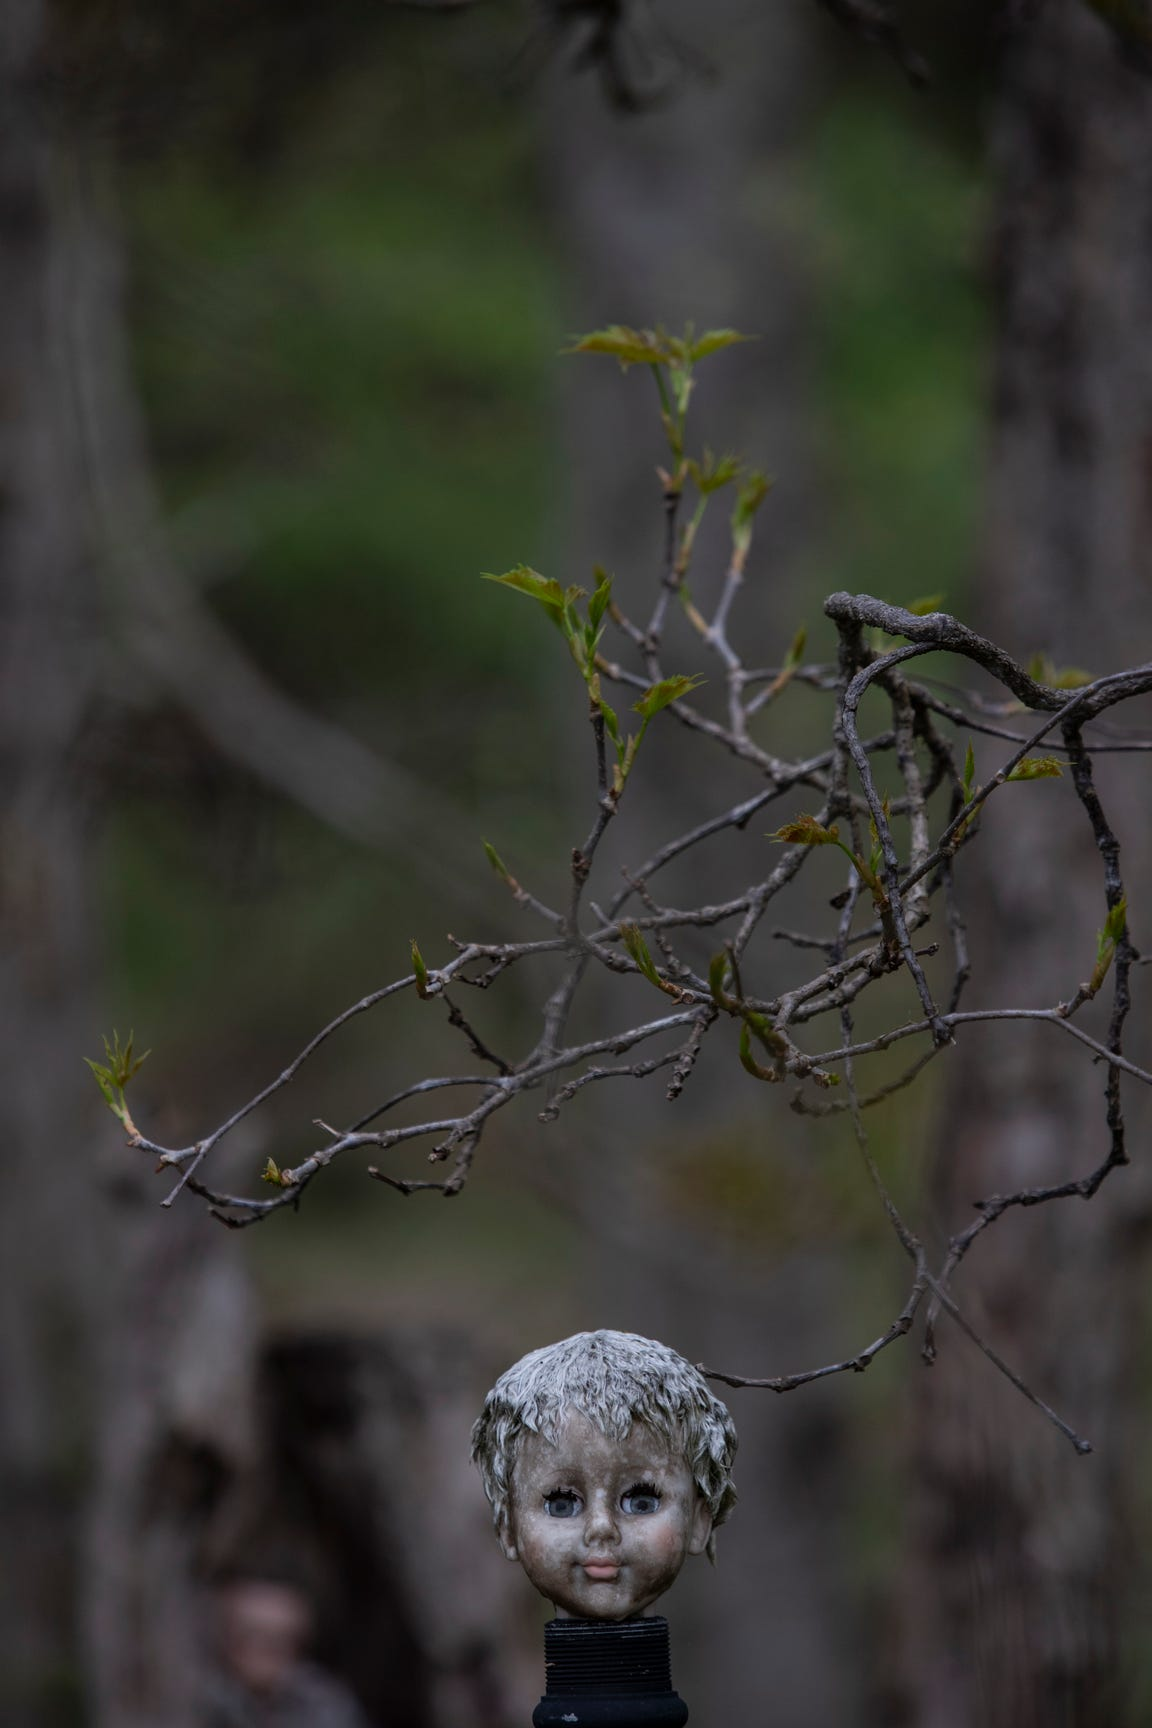 The head of a weathered doll becomes part of the scenery at the Home for Wayward Babydolls. April 19, 2019